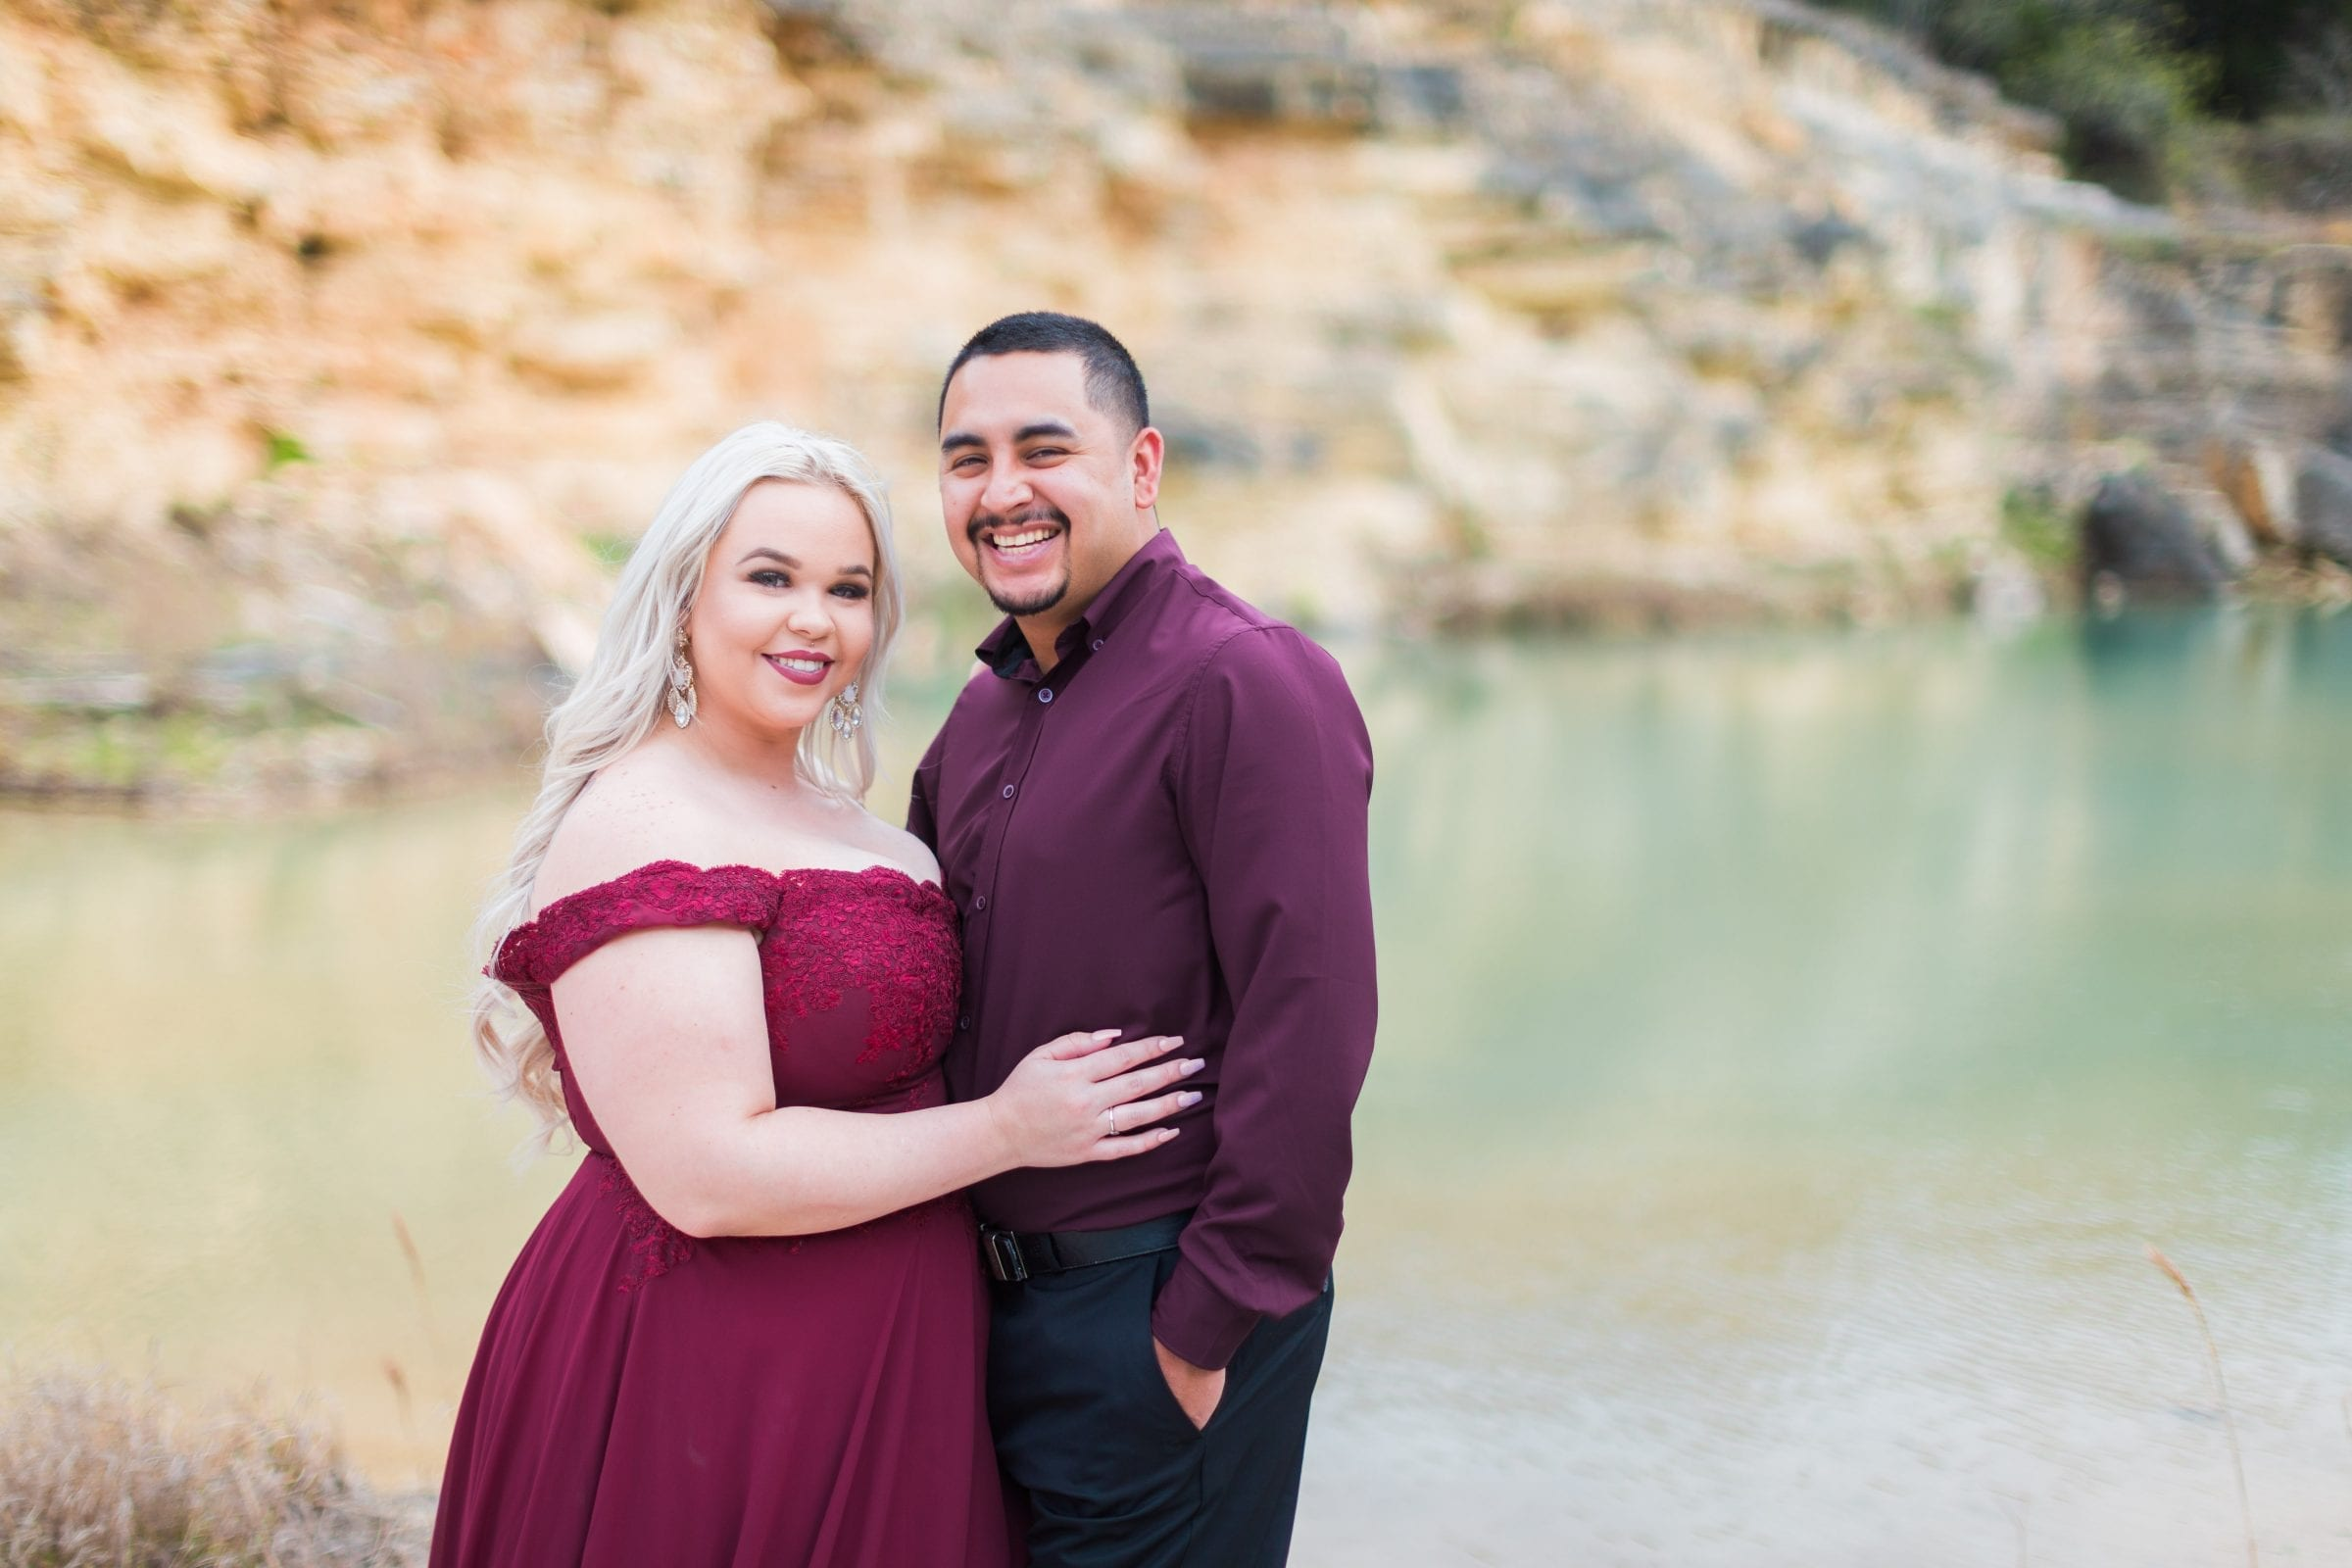 Katie and Gabe engagement session Canyon Lake dam gorge on the island yellow wall portrait